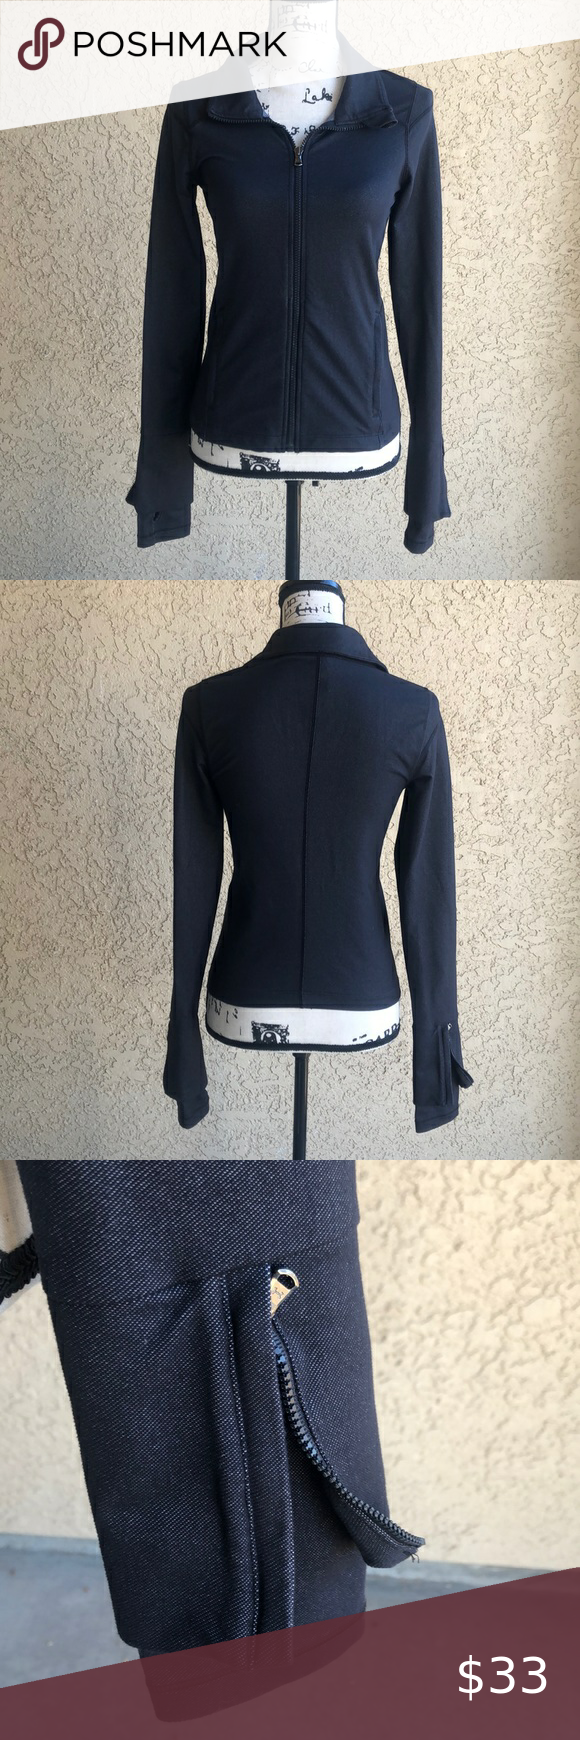 Under Armour Lux Lite Zipper Jacket Size Small In 2020 Fashion Trends Fashion Fashion Design